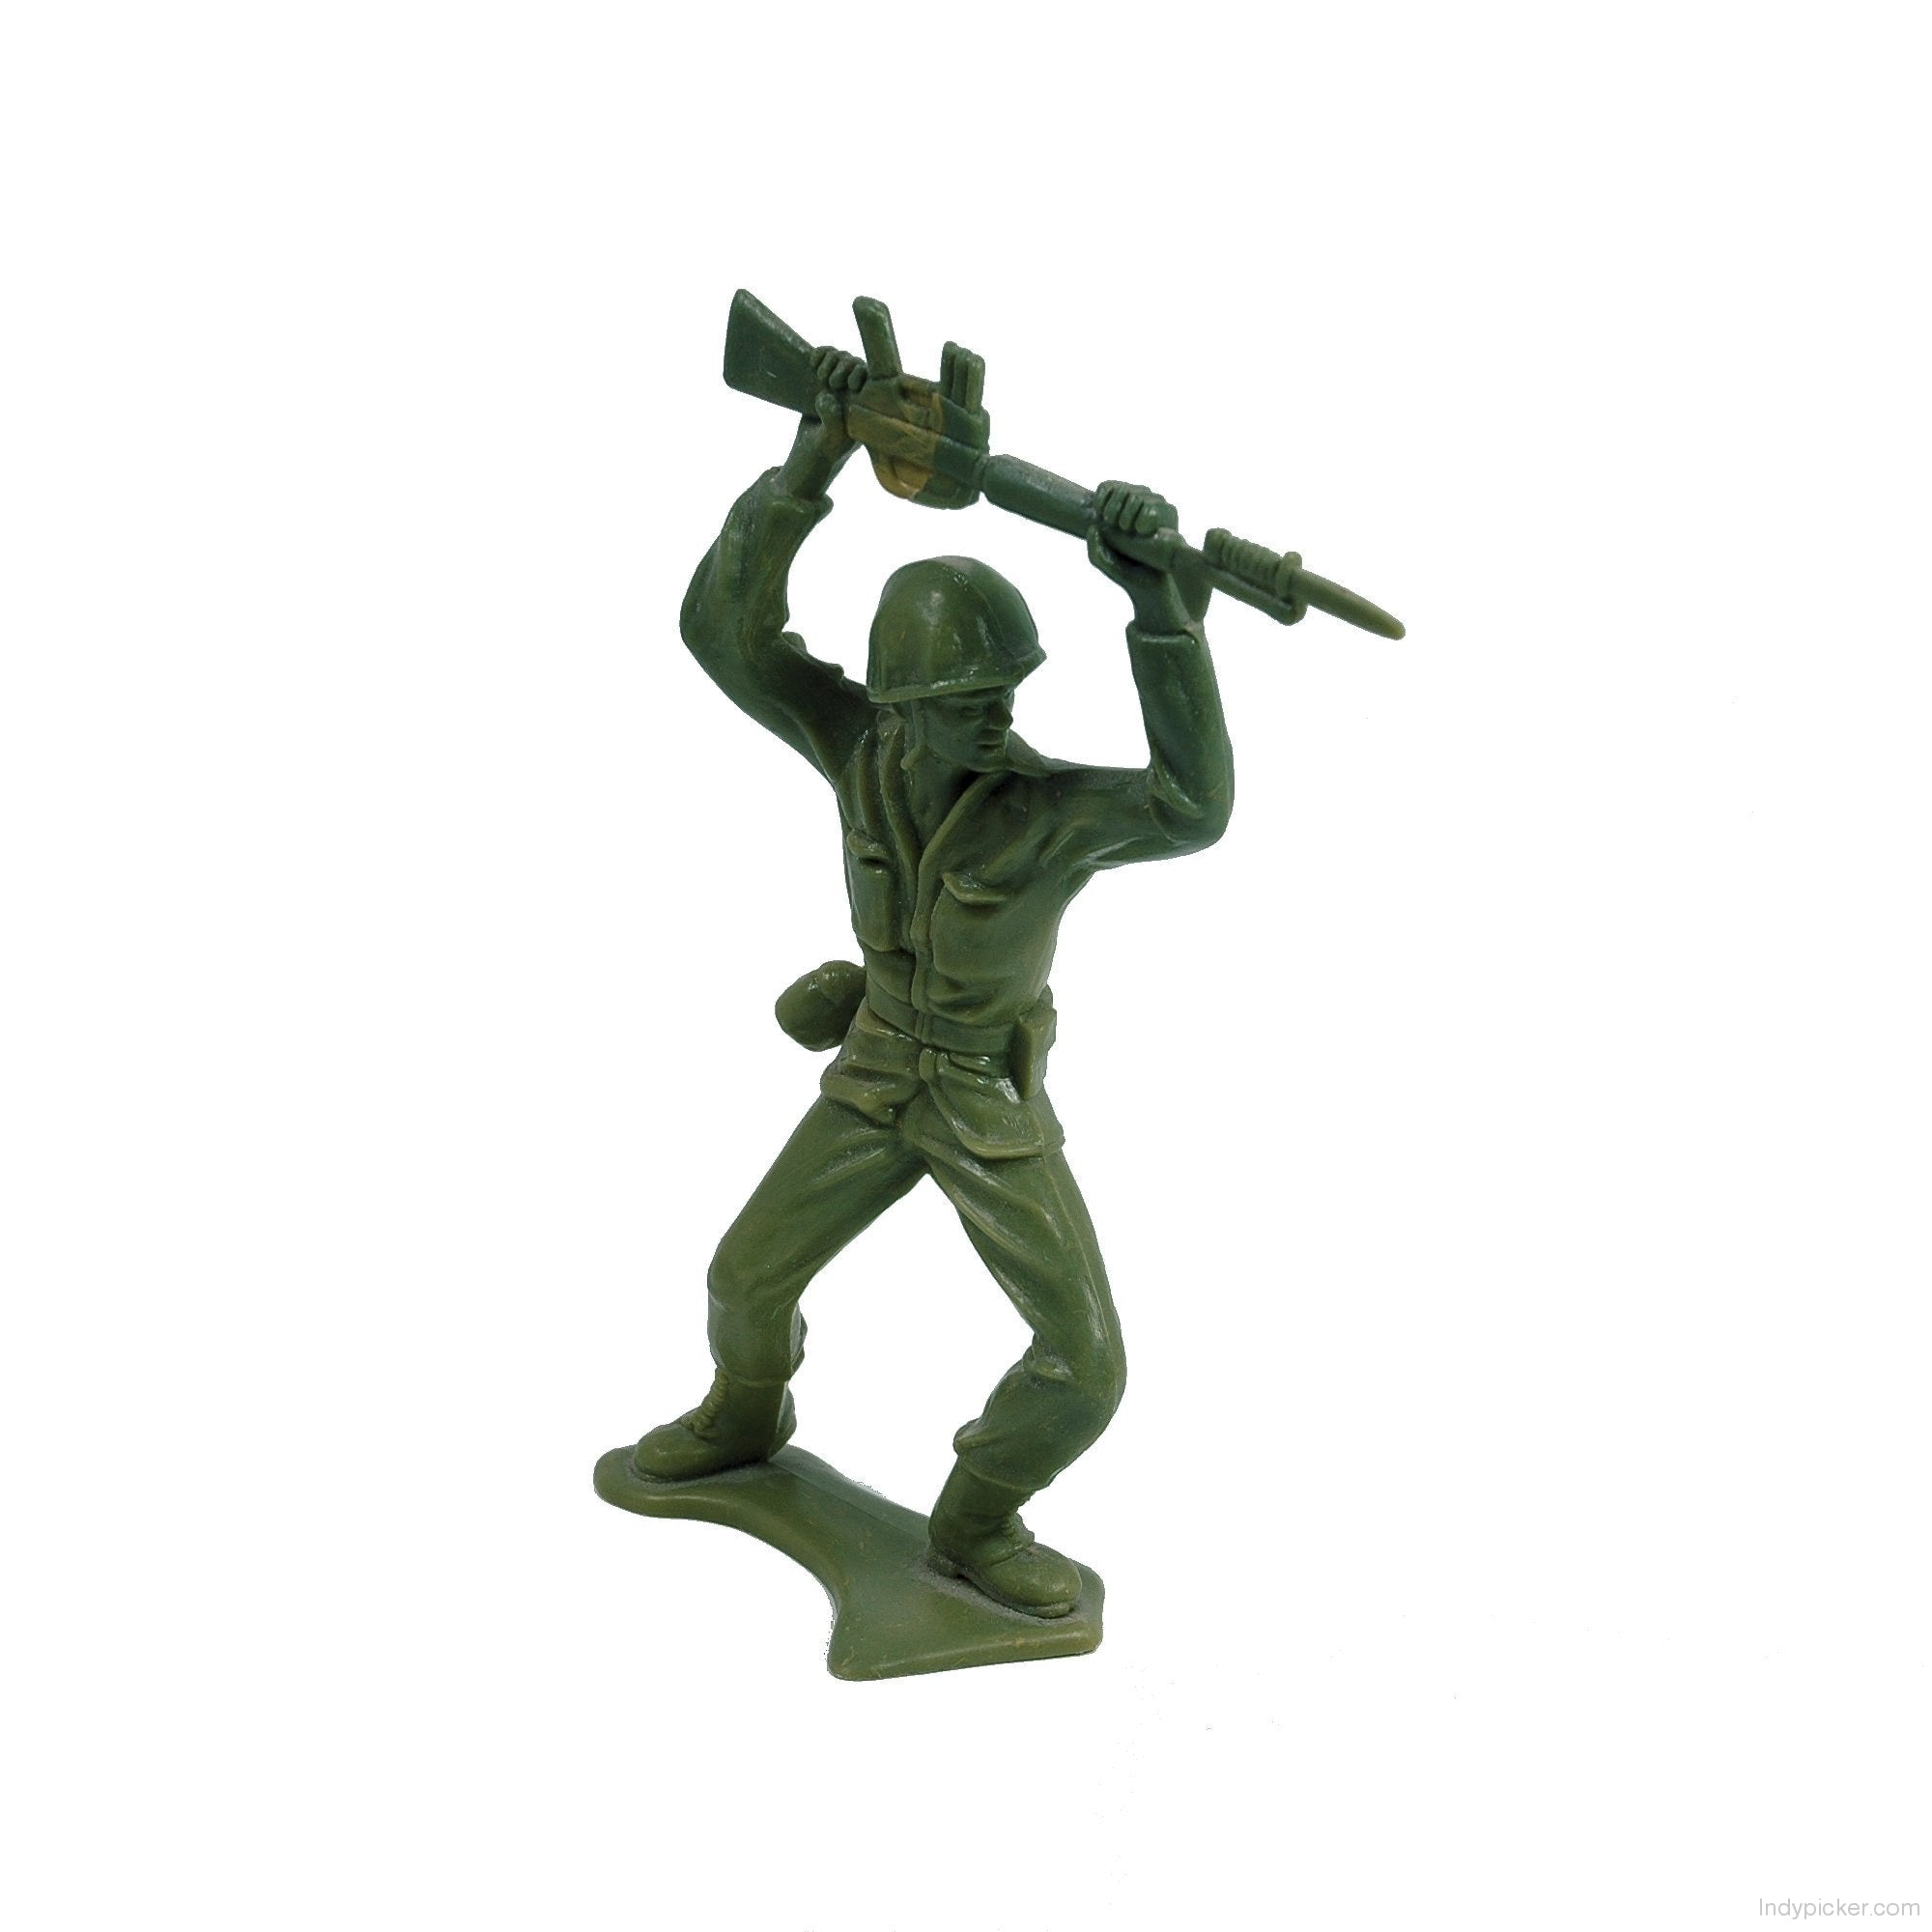 Vintage Tim Mee Plastic Army Man with M-16